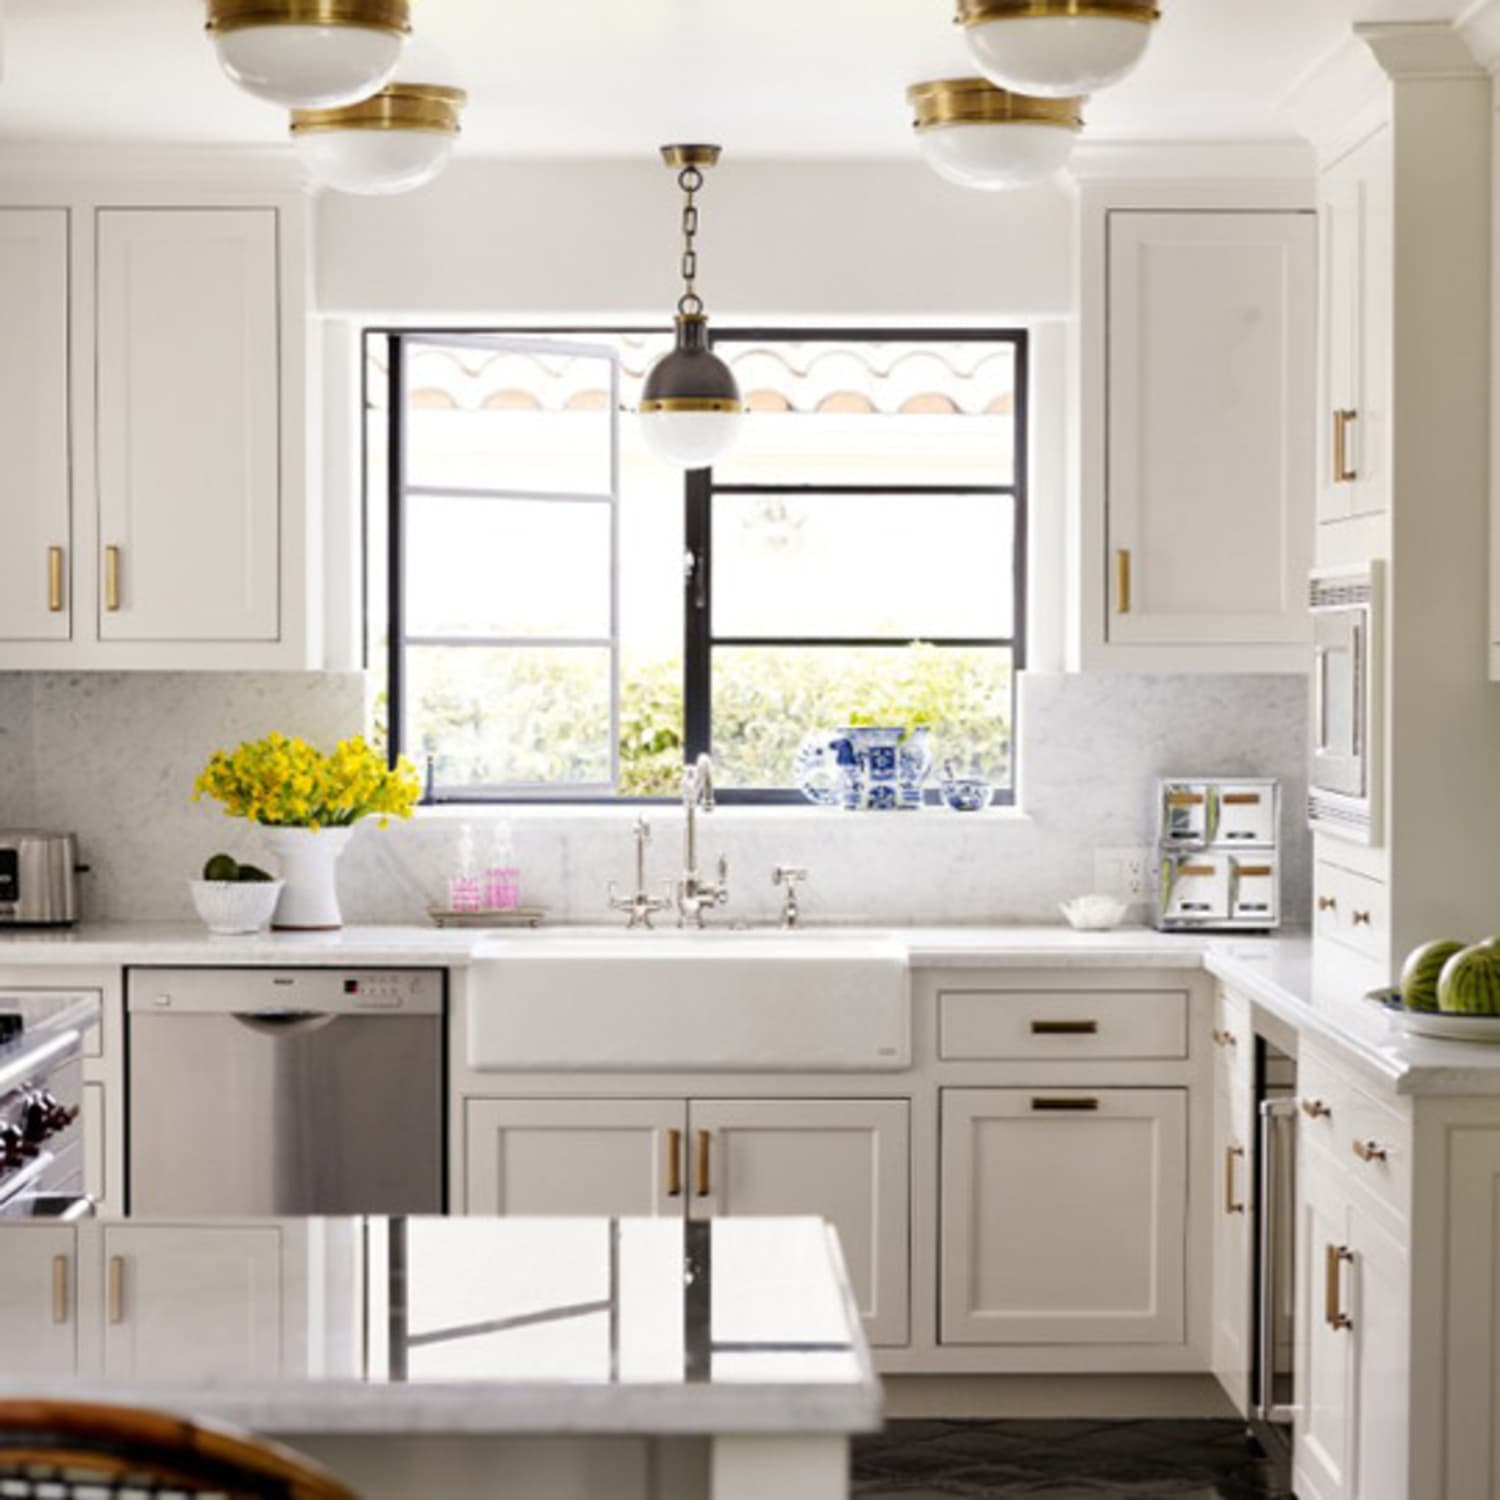 Glkitchen Cabinet Hardware: Get The Look: Brass Kitchen Cabinet Pulls